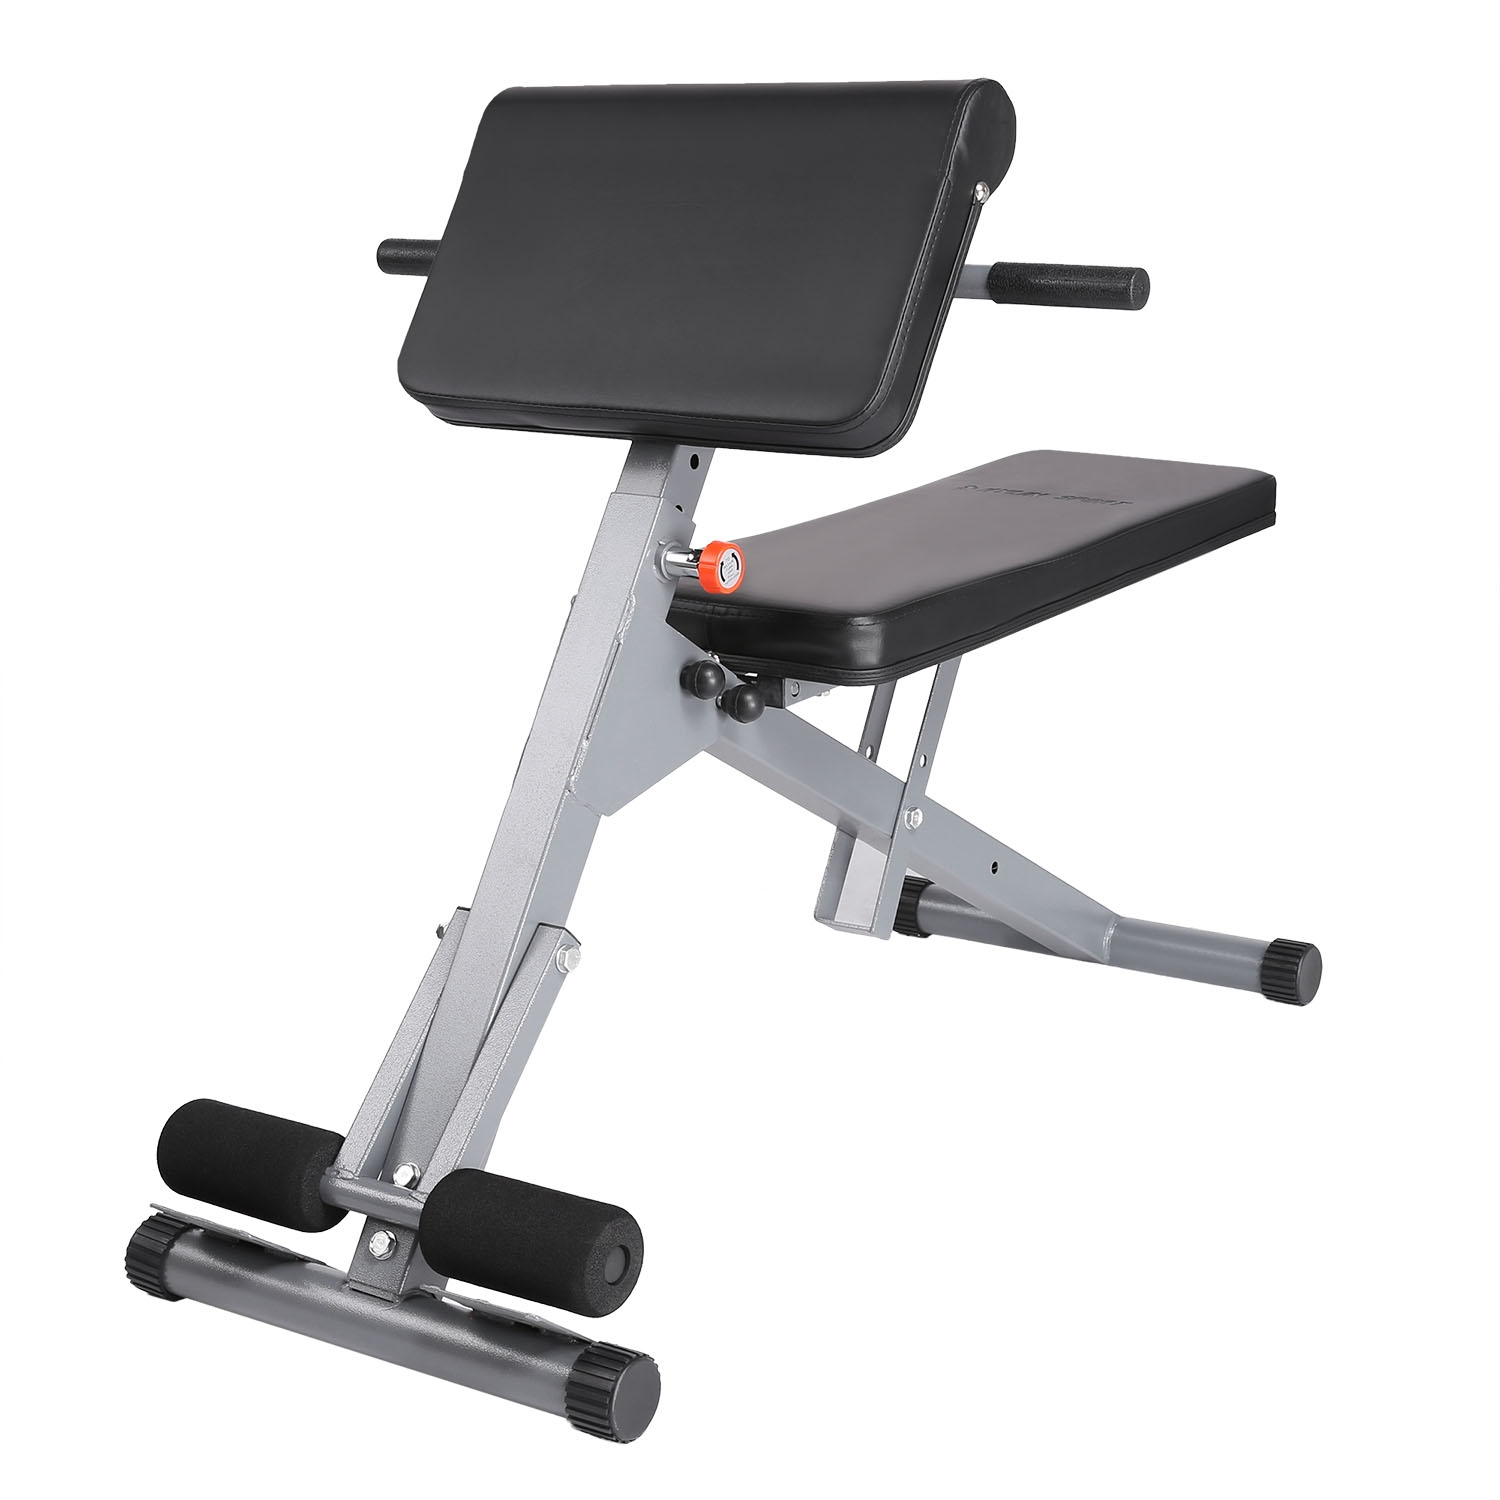 chair sit ups kidkraft aspen table and set roman hyperextension bench up ab exercise home gym fitness workout equipment walmart com